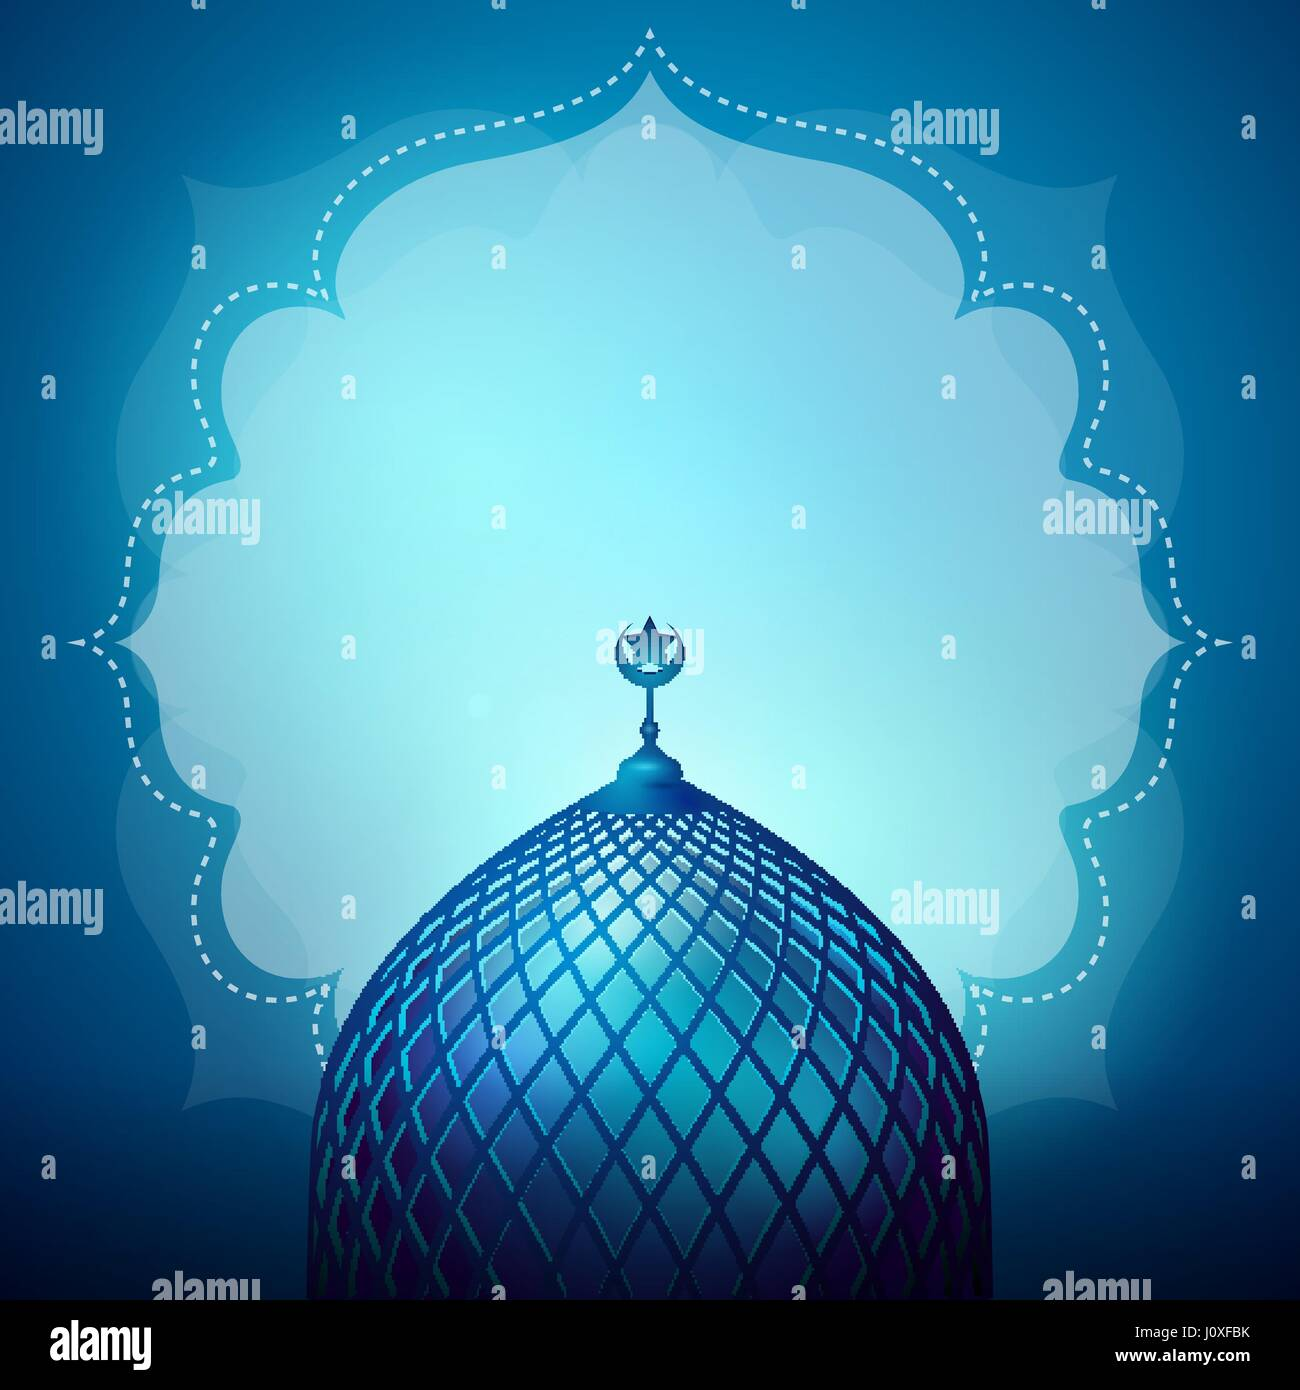 islamic design banner background